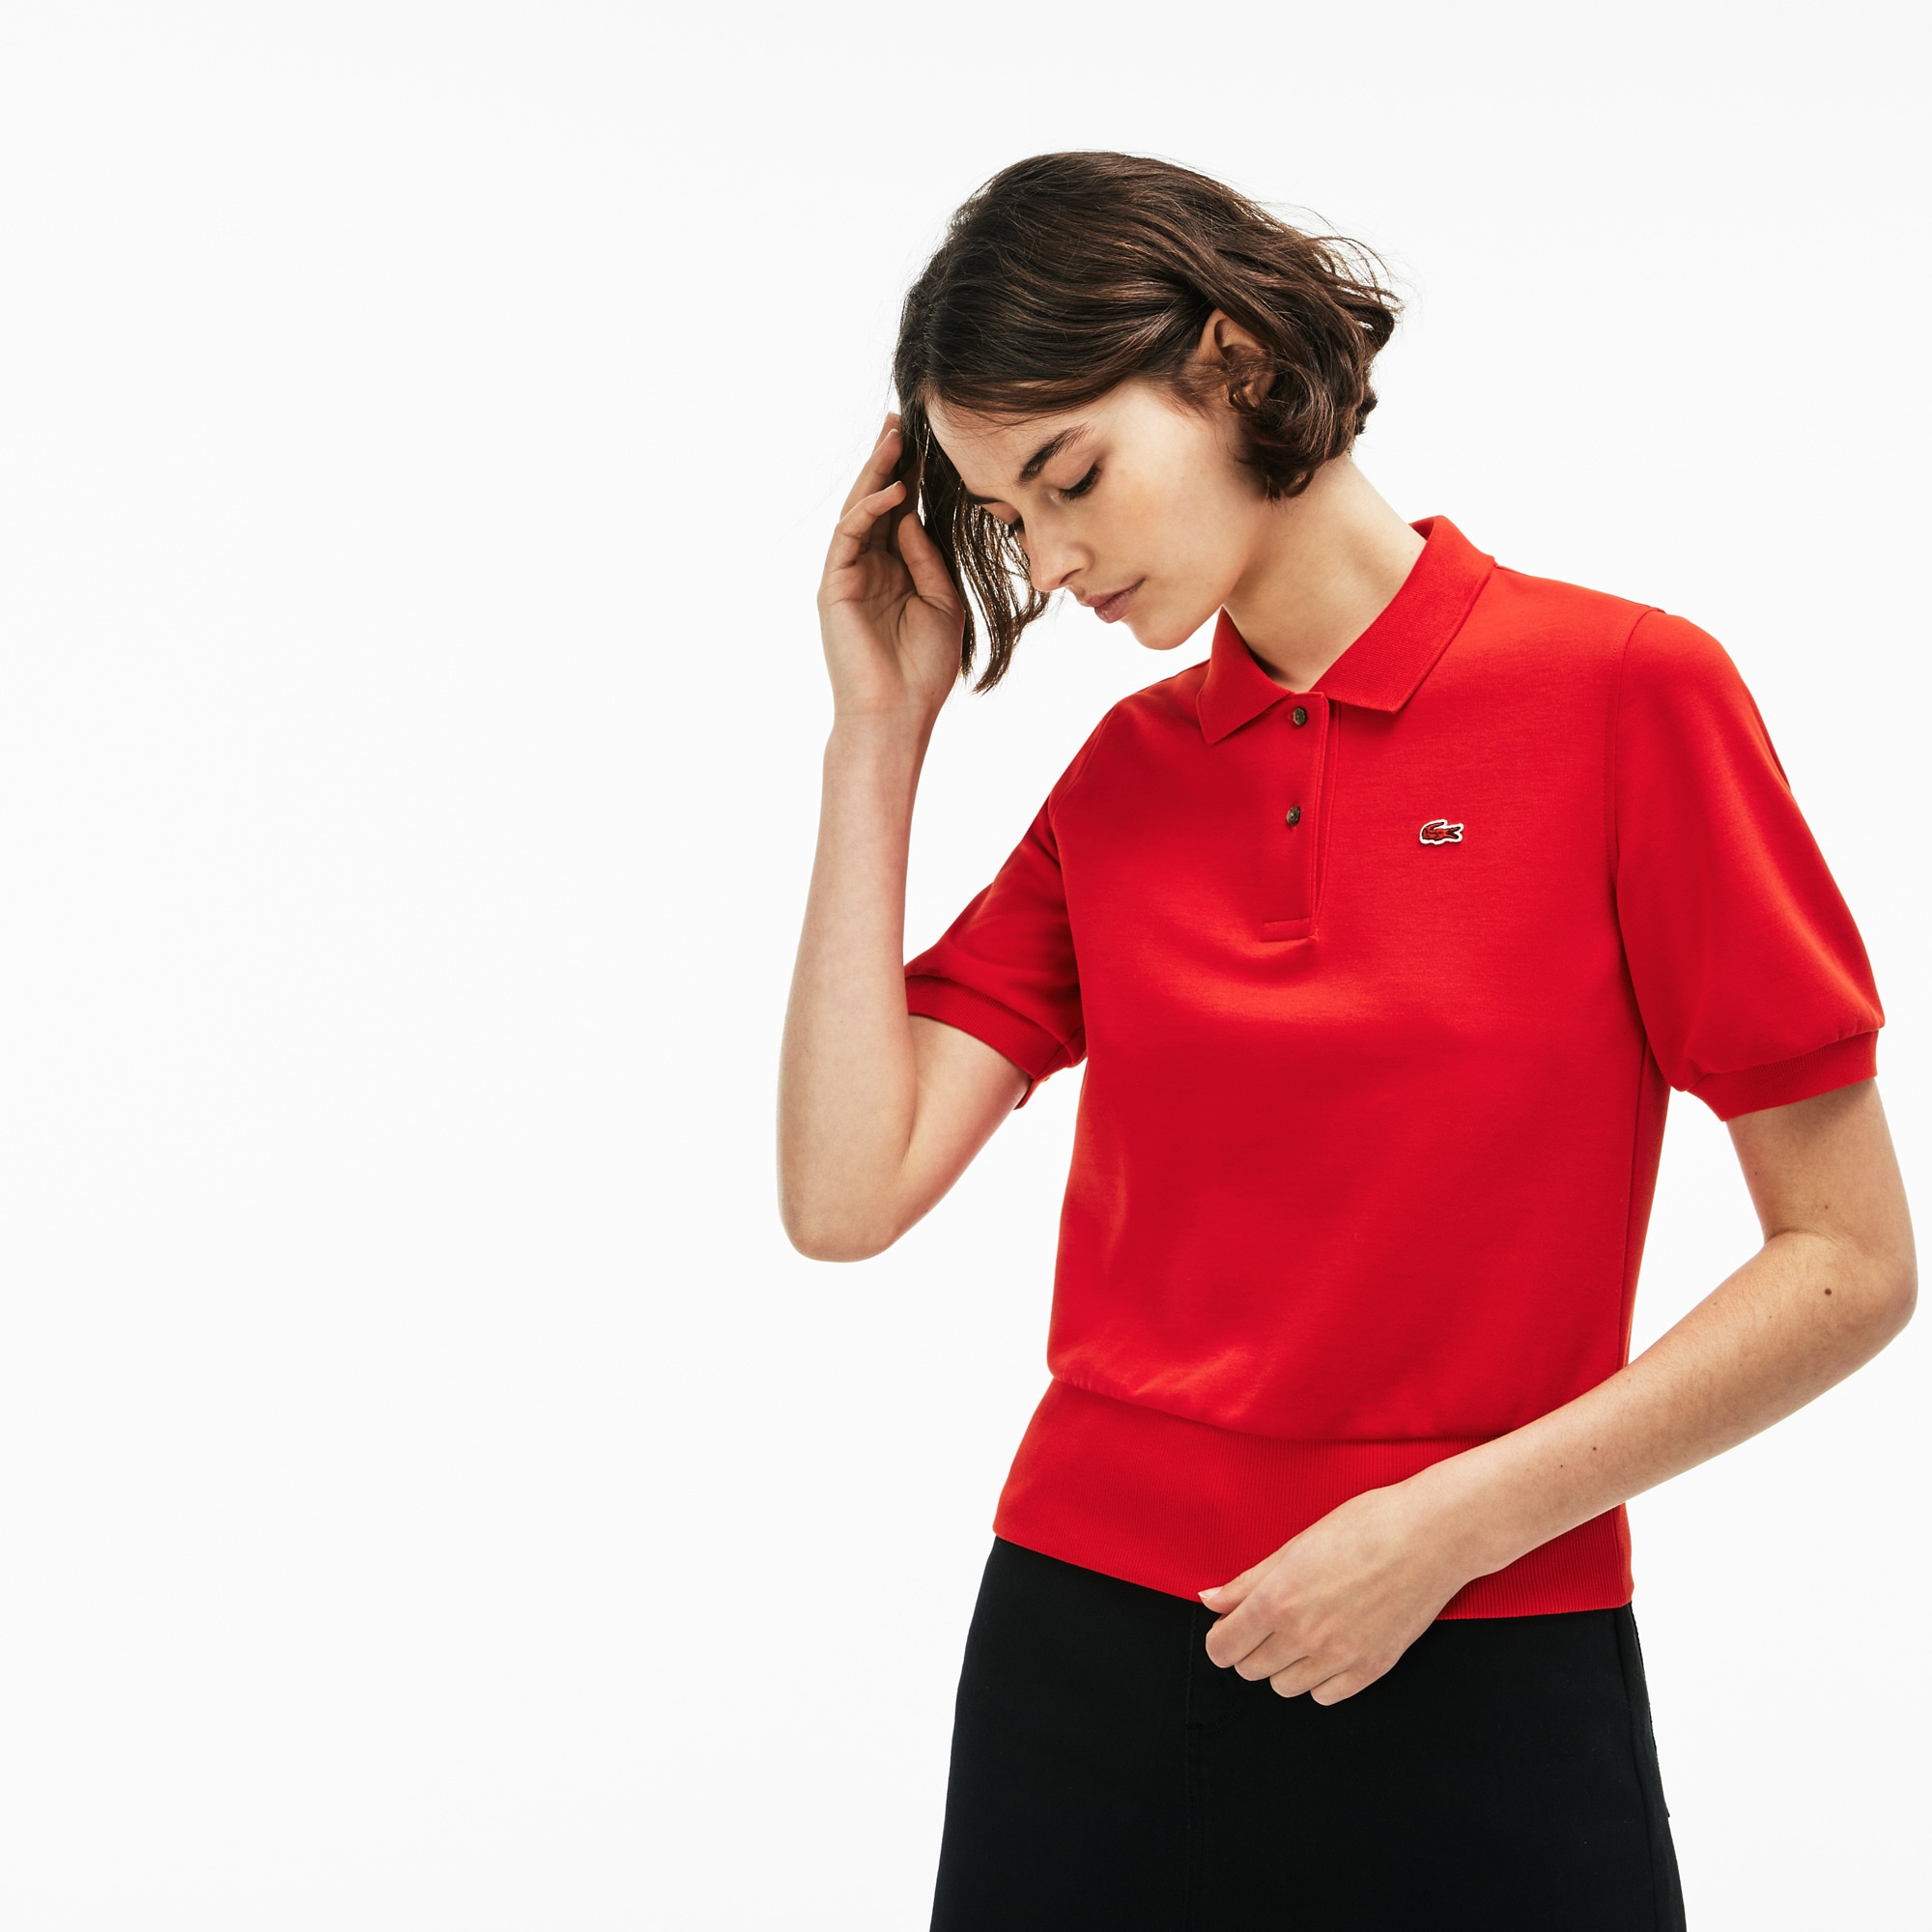 Lacoste LIVE-polo dames boxy fit dubbellaagse jersey